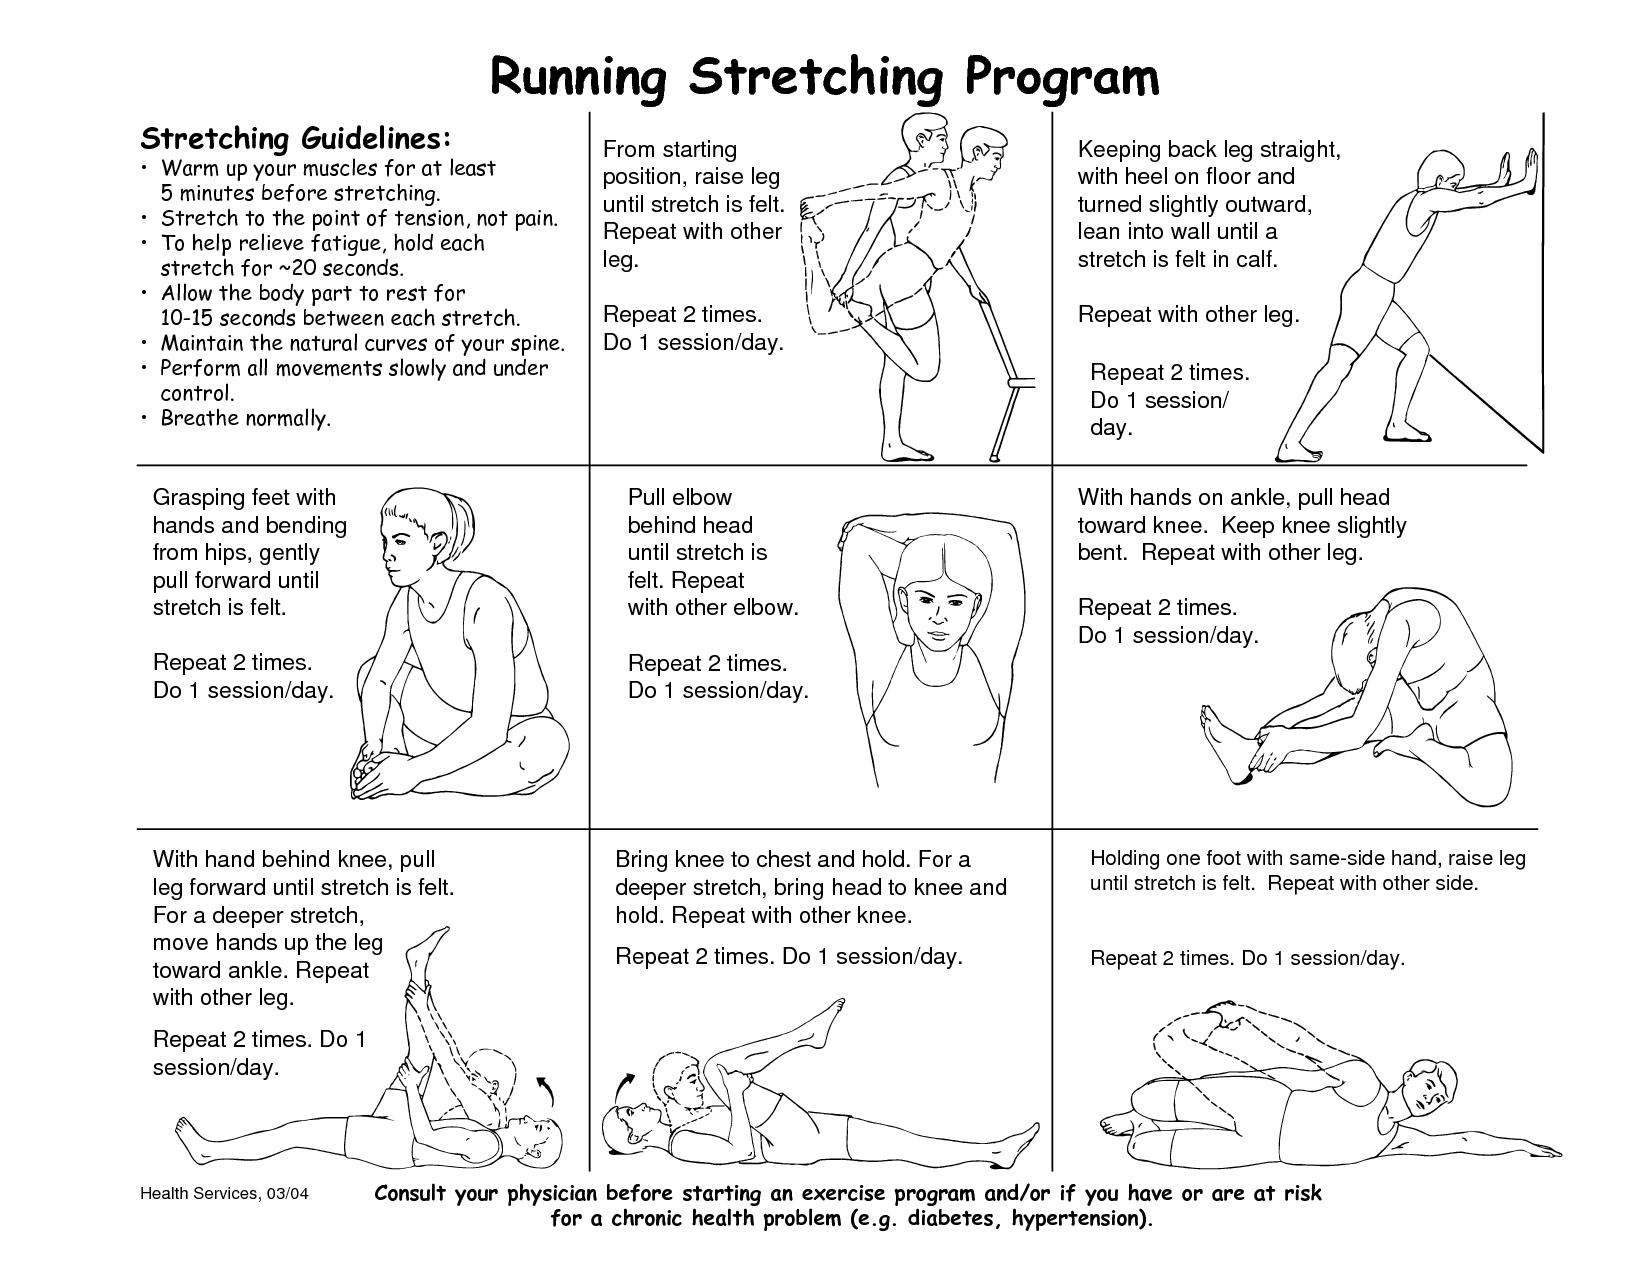 Stretching Post Running To Prevent Injuries Stretches For